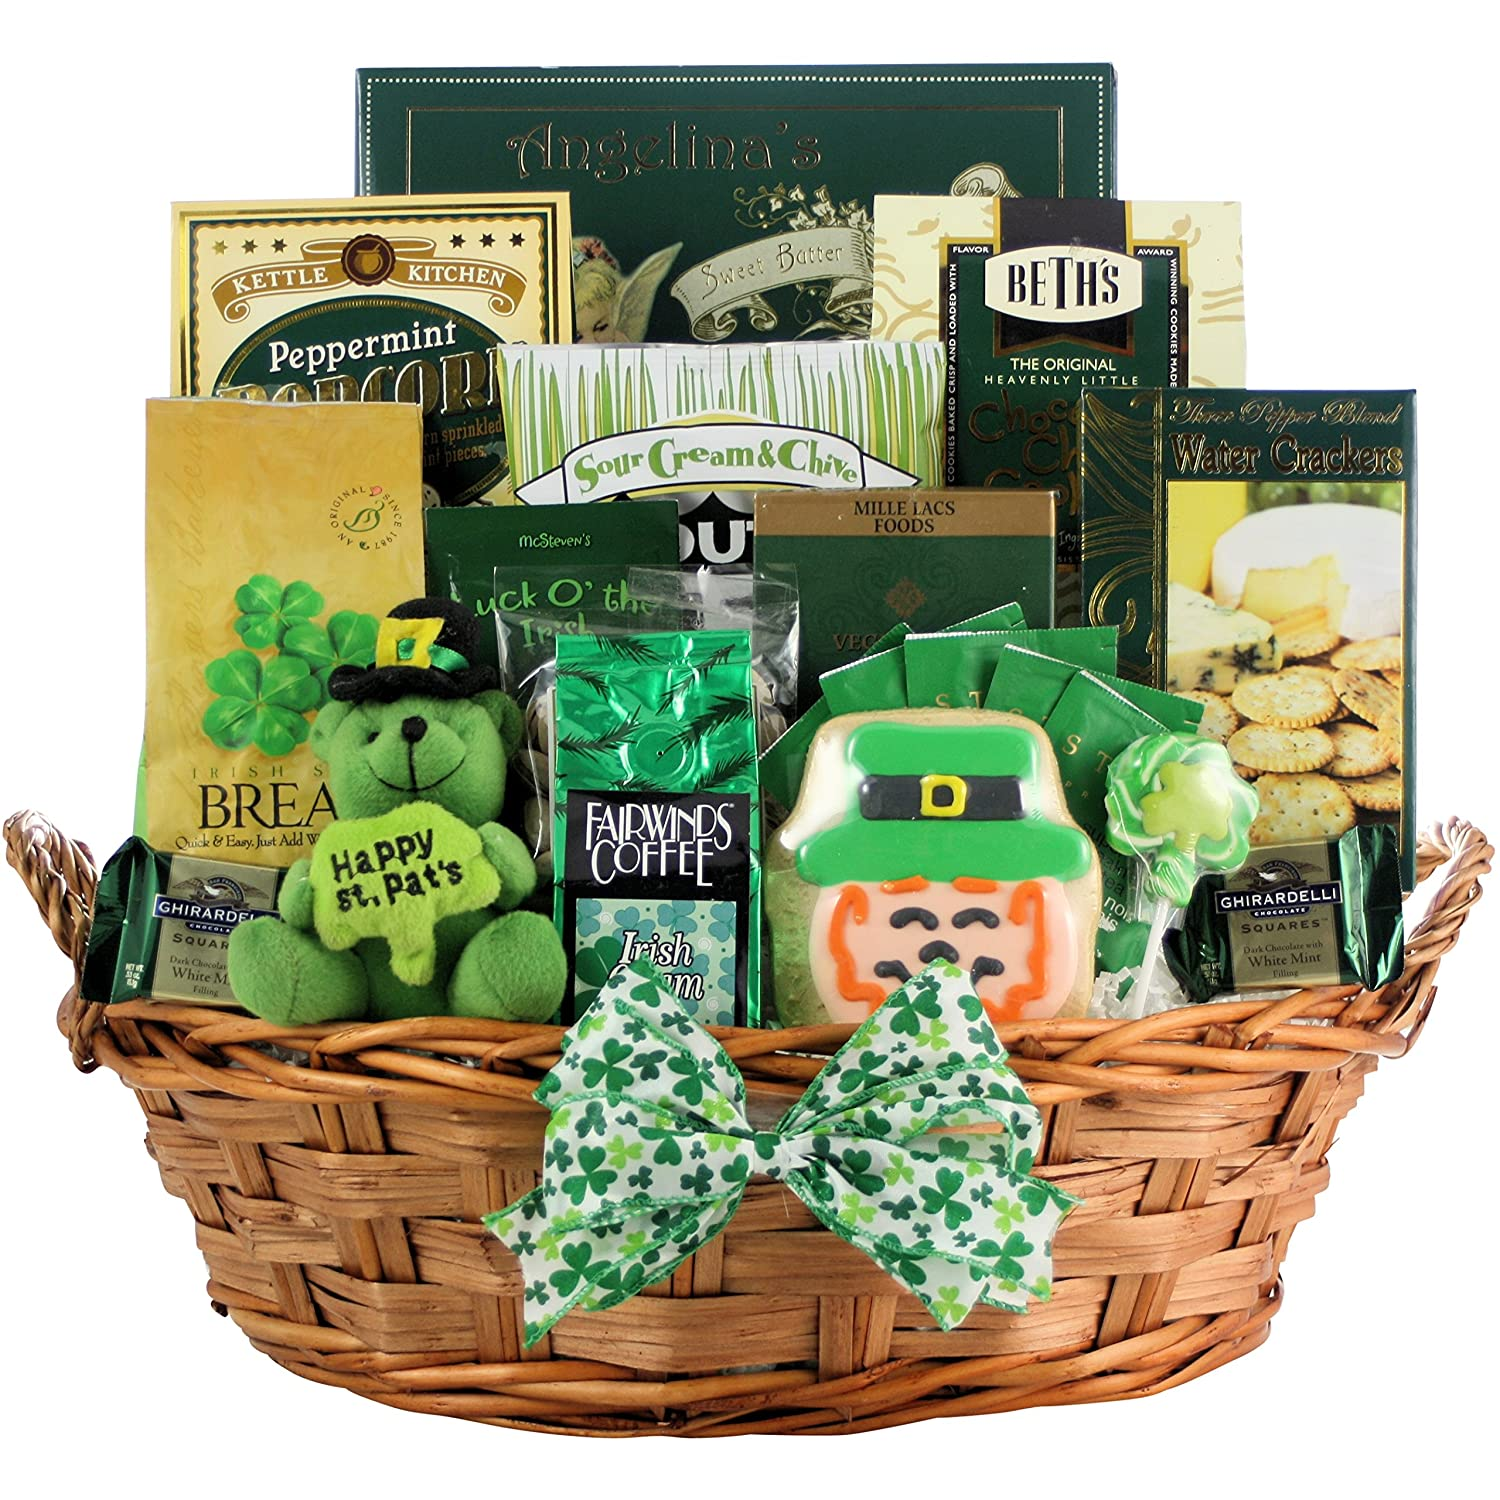 Luck O' The Irish Large: St. Patrick's Day Gourmet Gift Basket